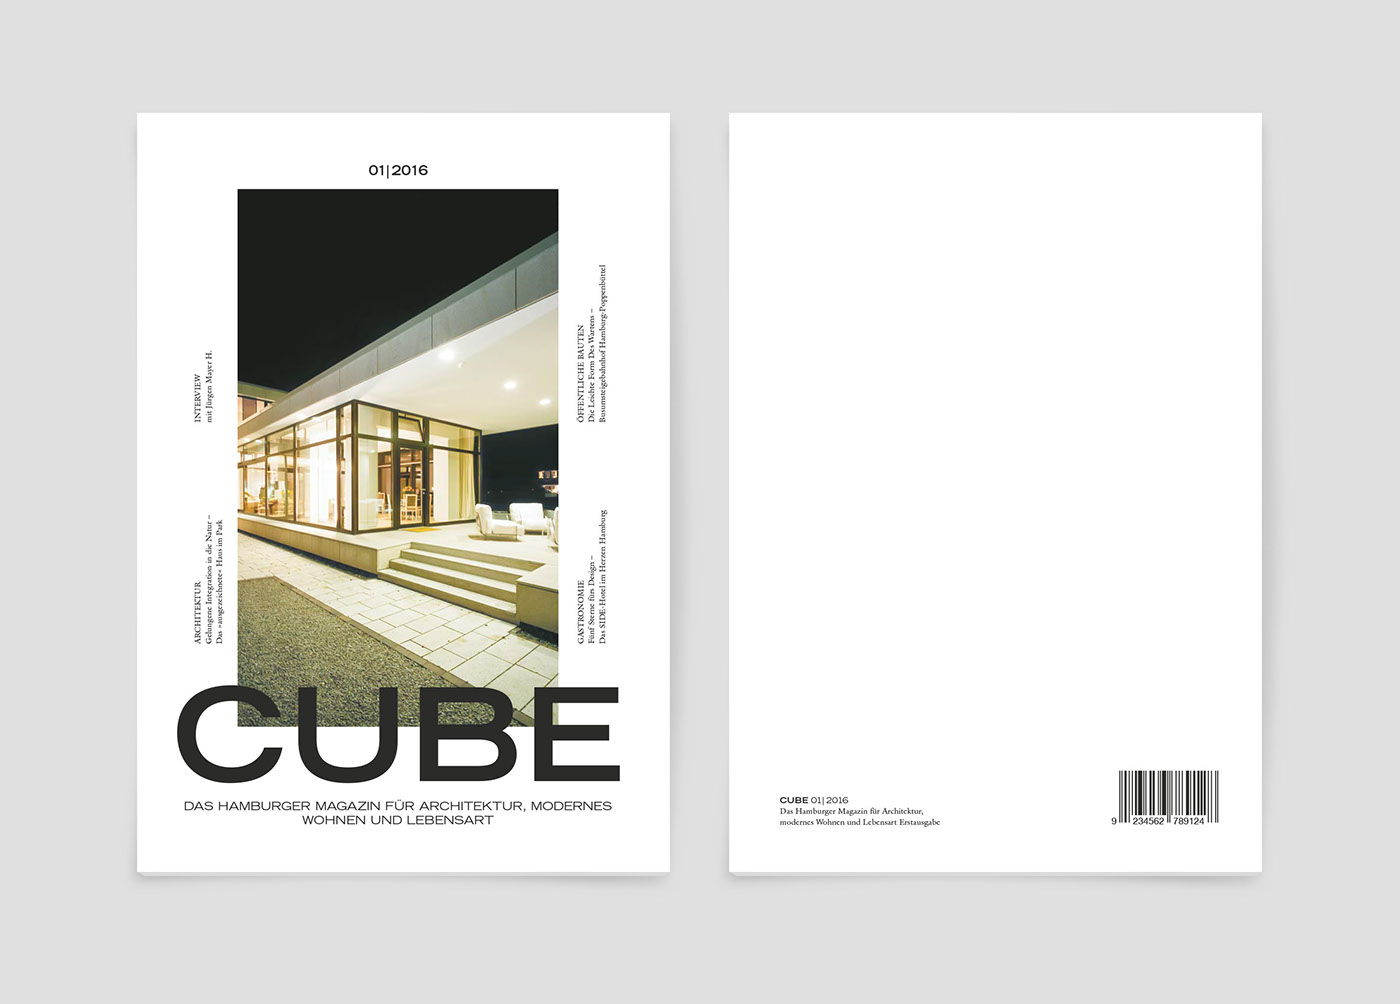 CUBE Magazine Redesign on Behance